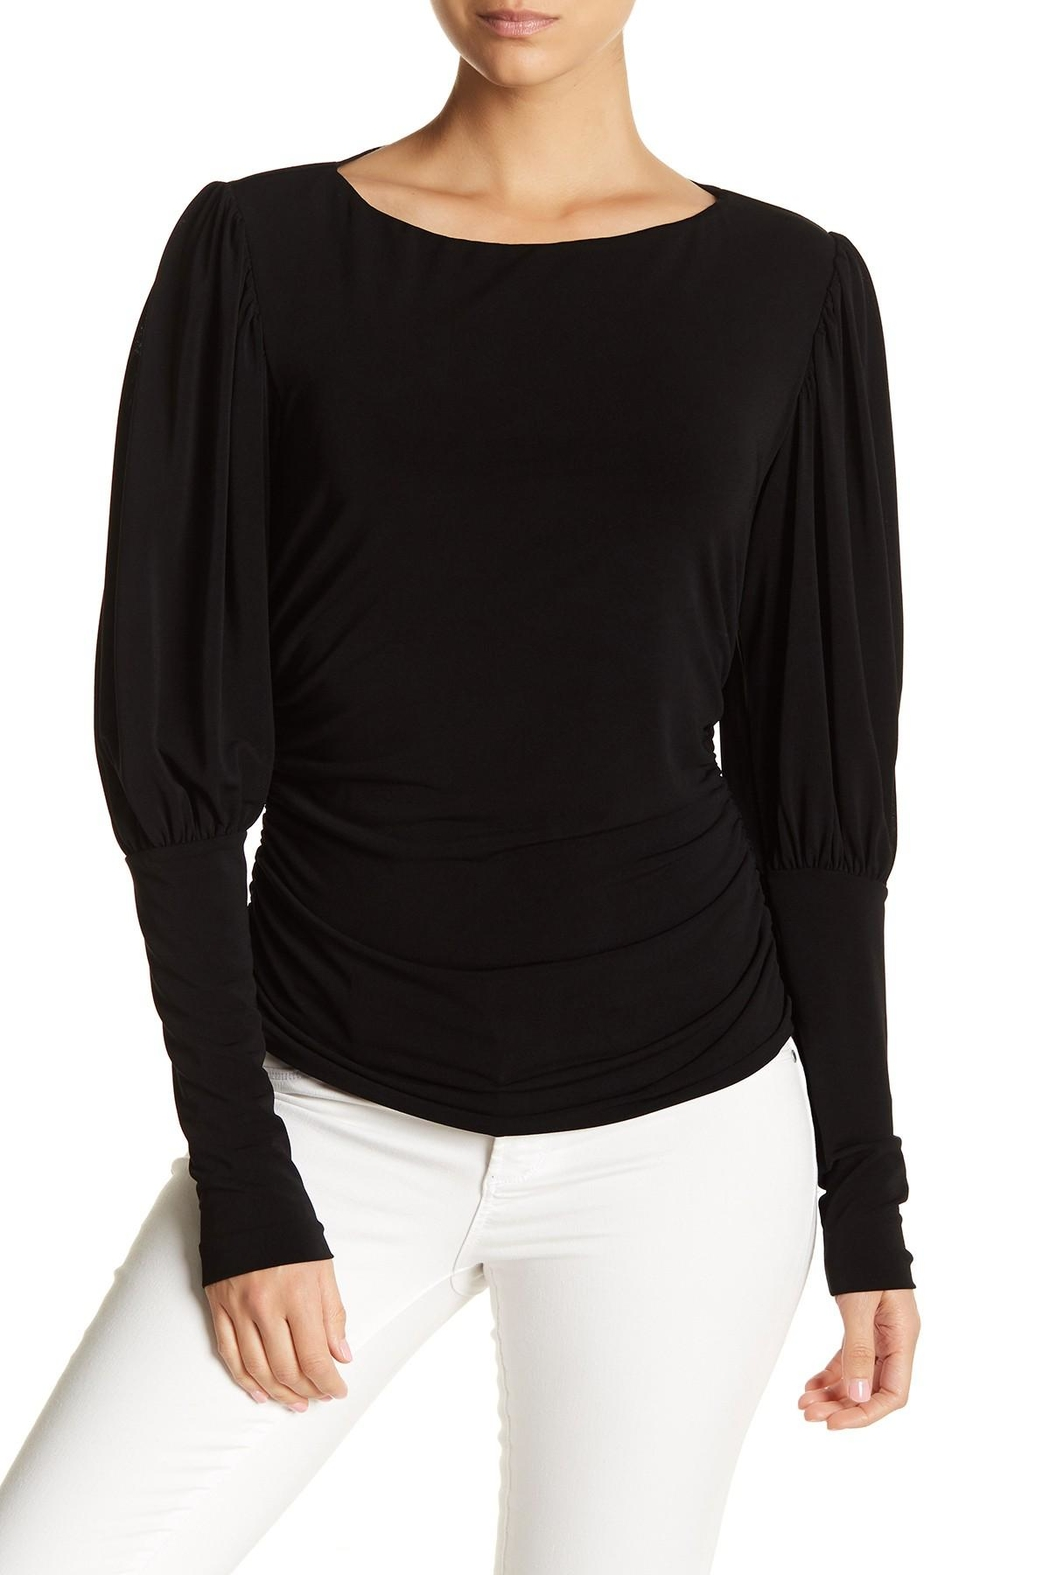 Nicole Miller Puff Sleeve Top - Main Image